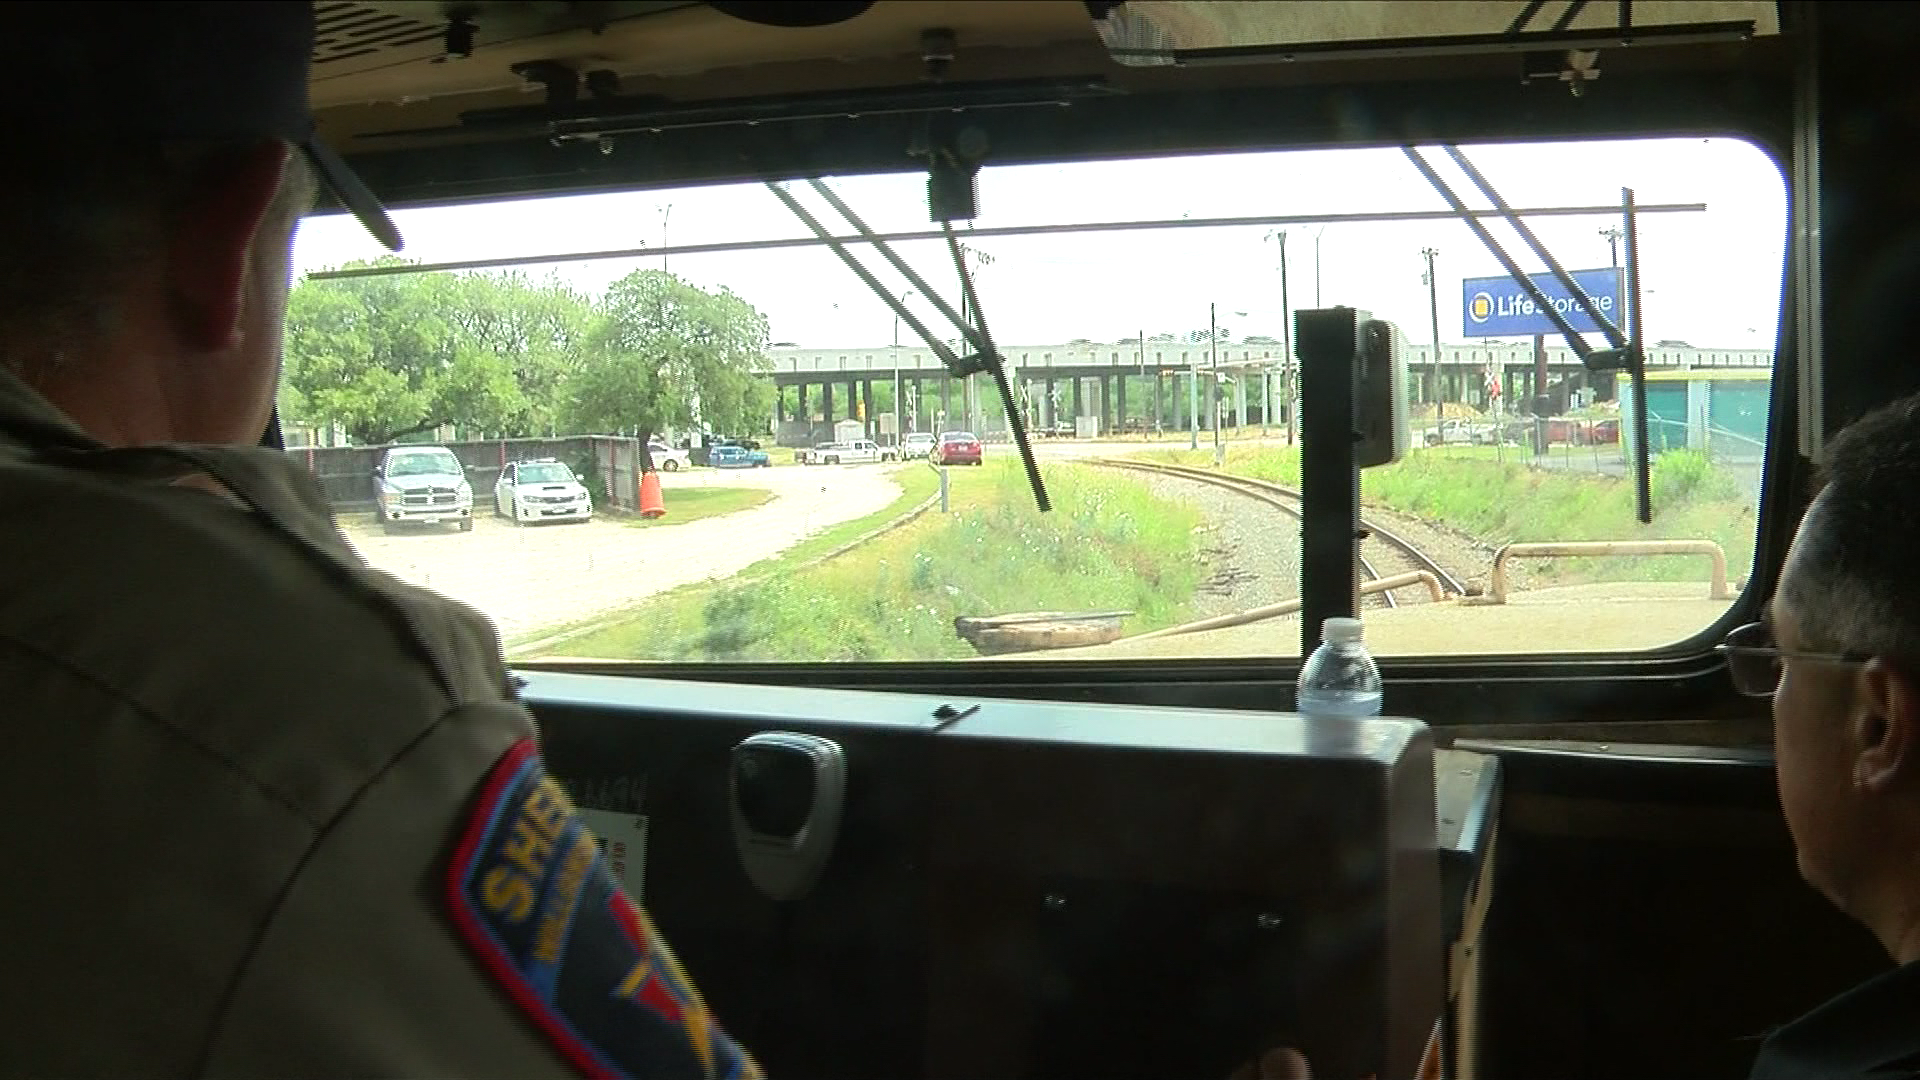 To crack down on drivers illegally crossing at railroad signals, Williamson County law enforcement rode along on a train to catch them in the act. (CBS Austin)